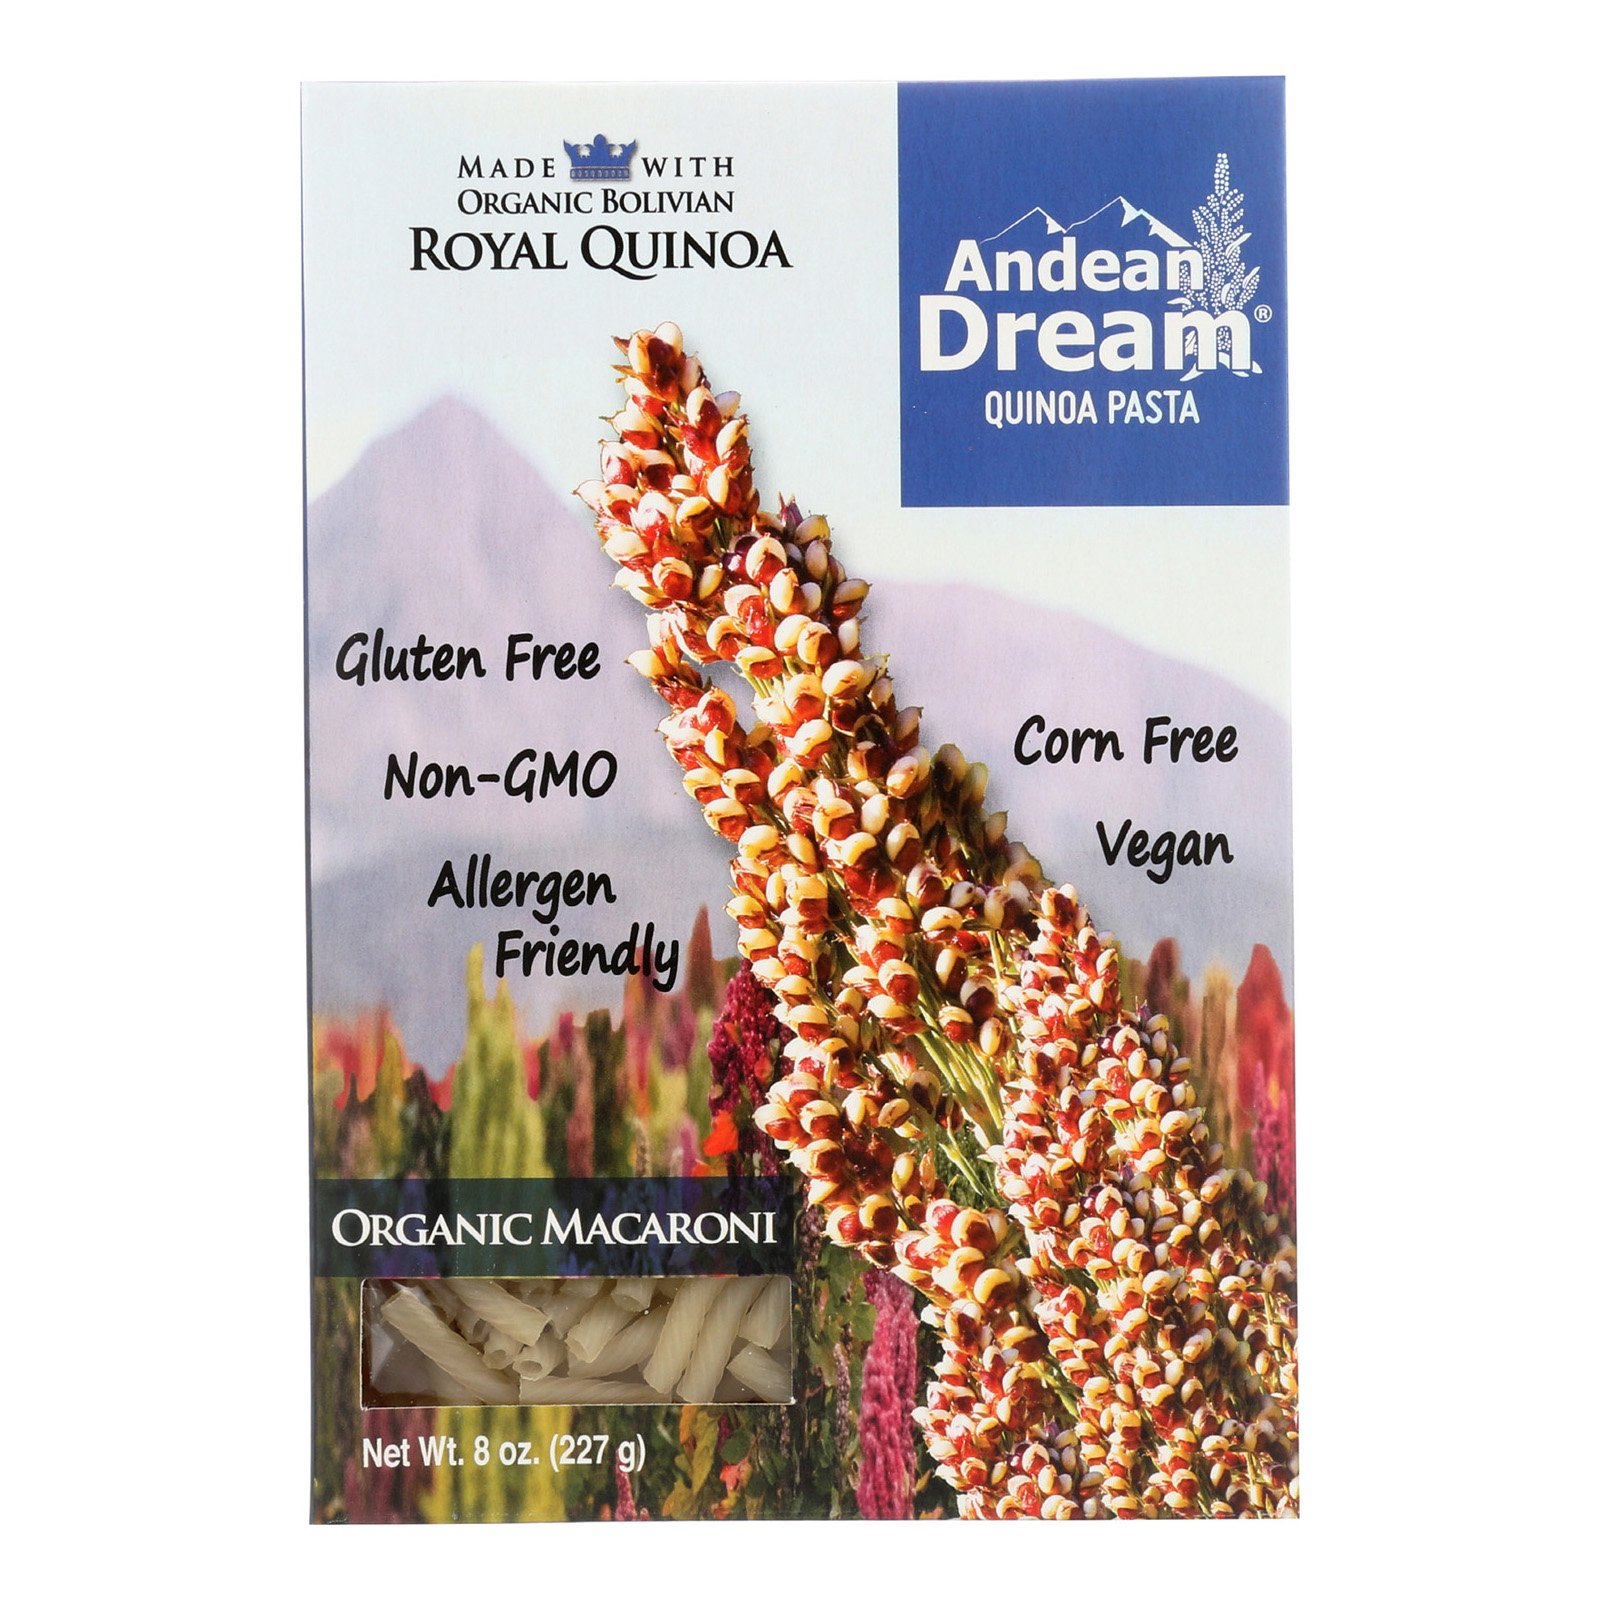 Andean Dream Gluten Free Organic Macaroni Quinoa Pasta - Case of 12 - 8 oz. by Andean Dream